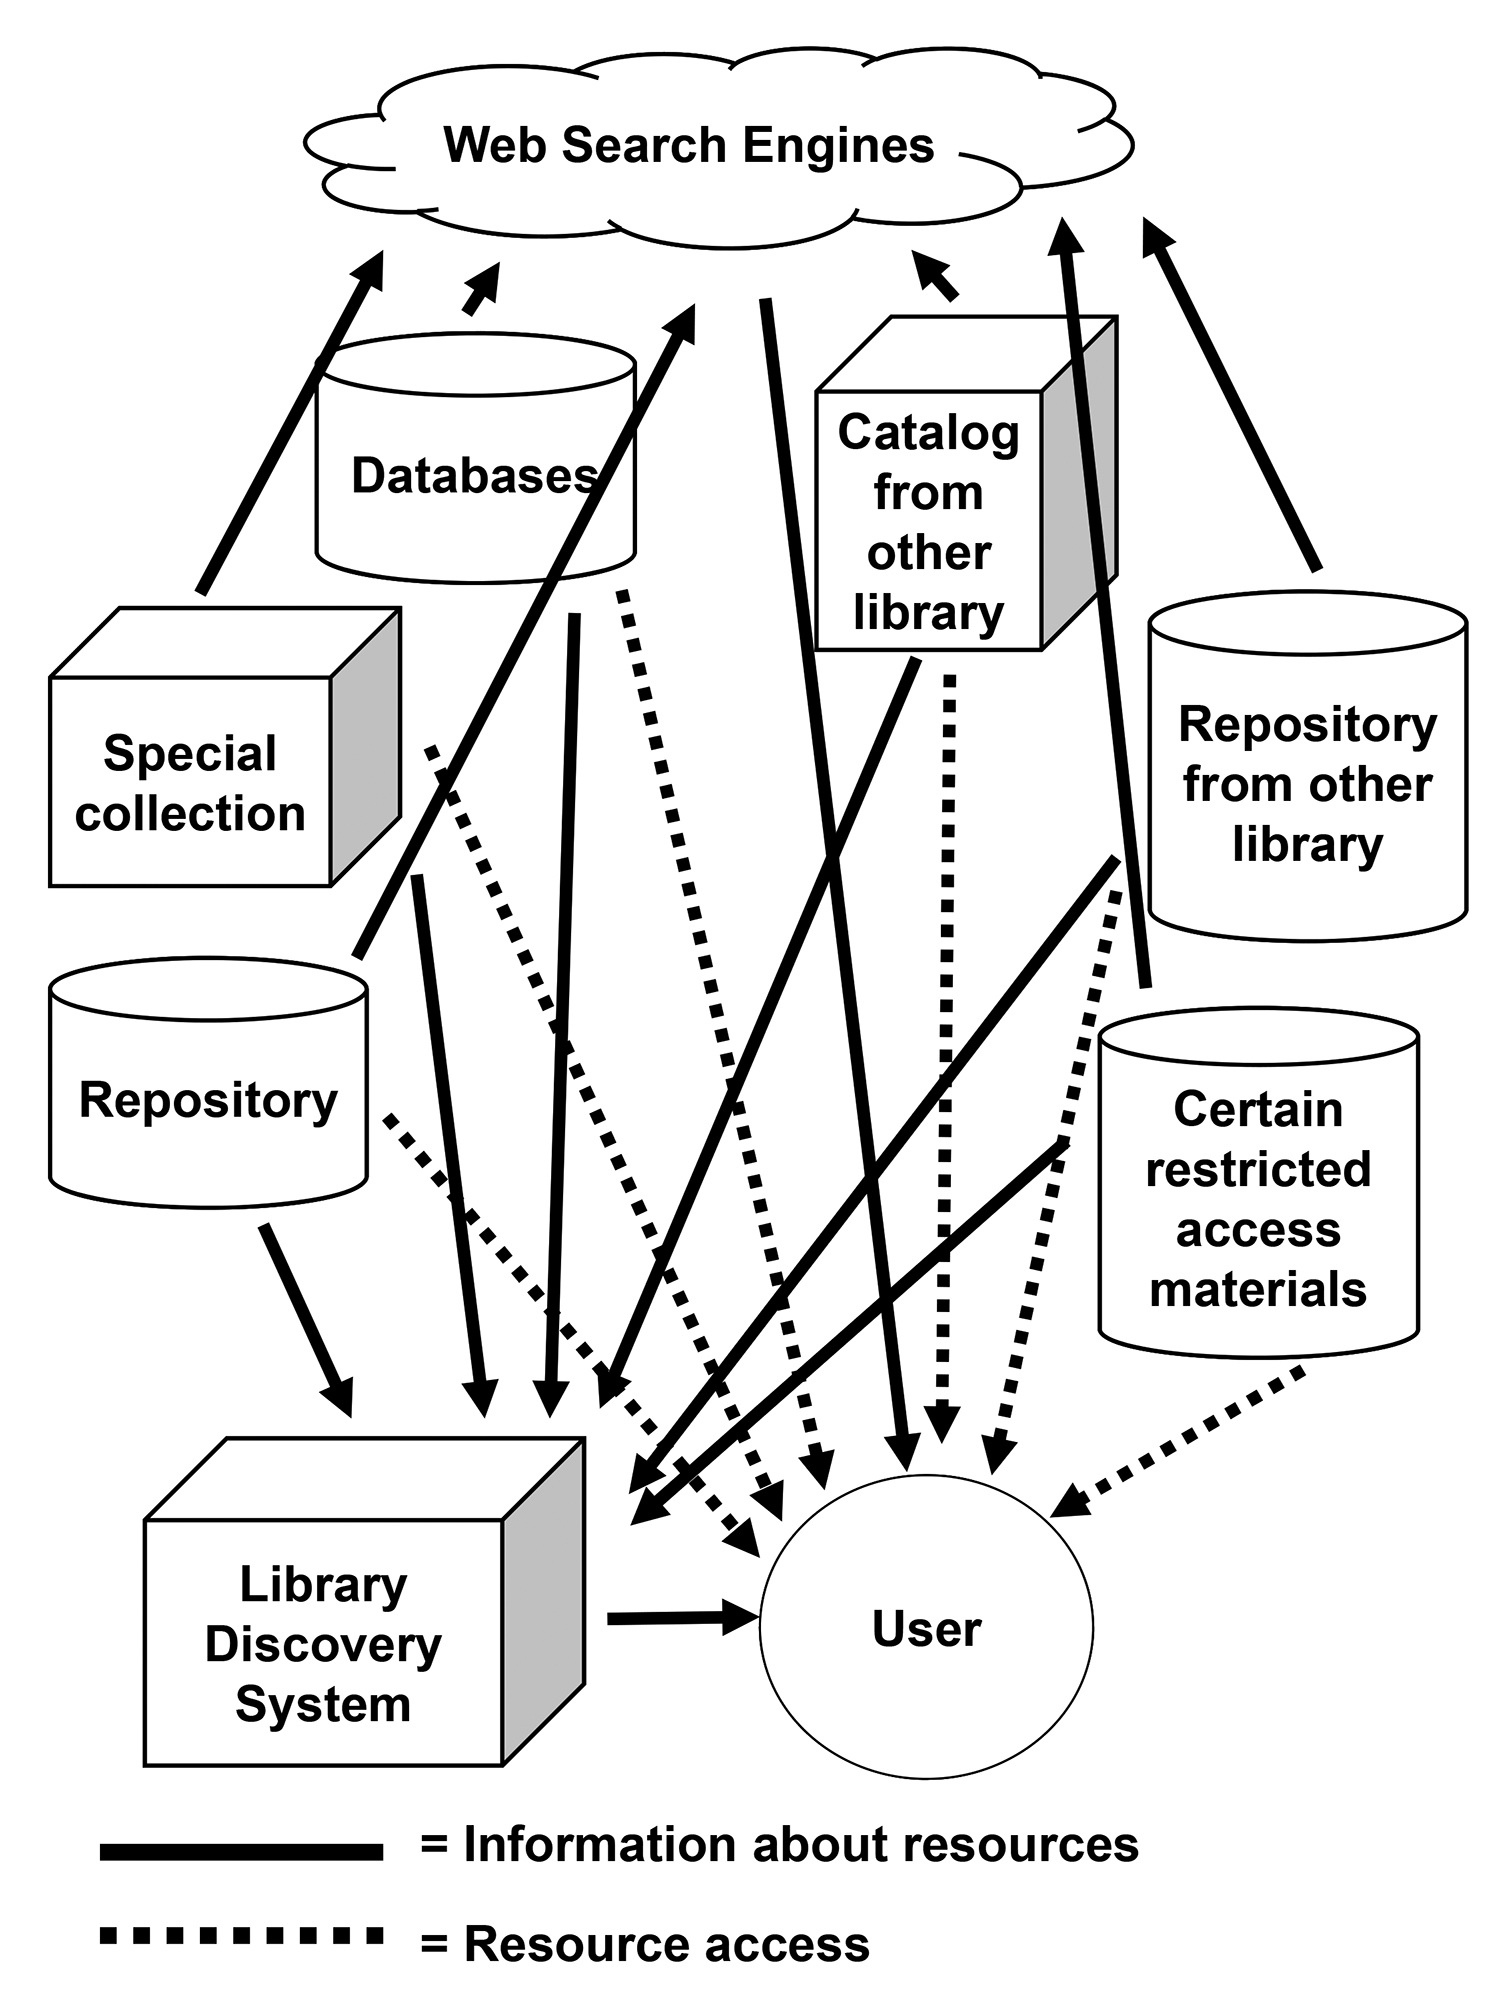 a diagram showing Next-Generation Library Service Model